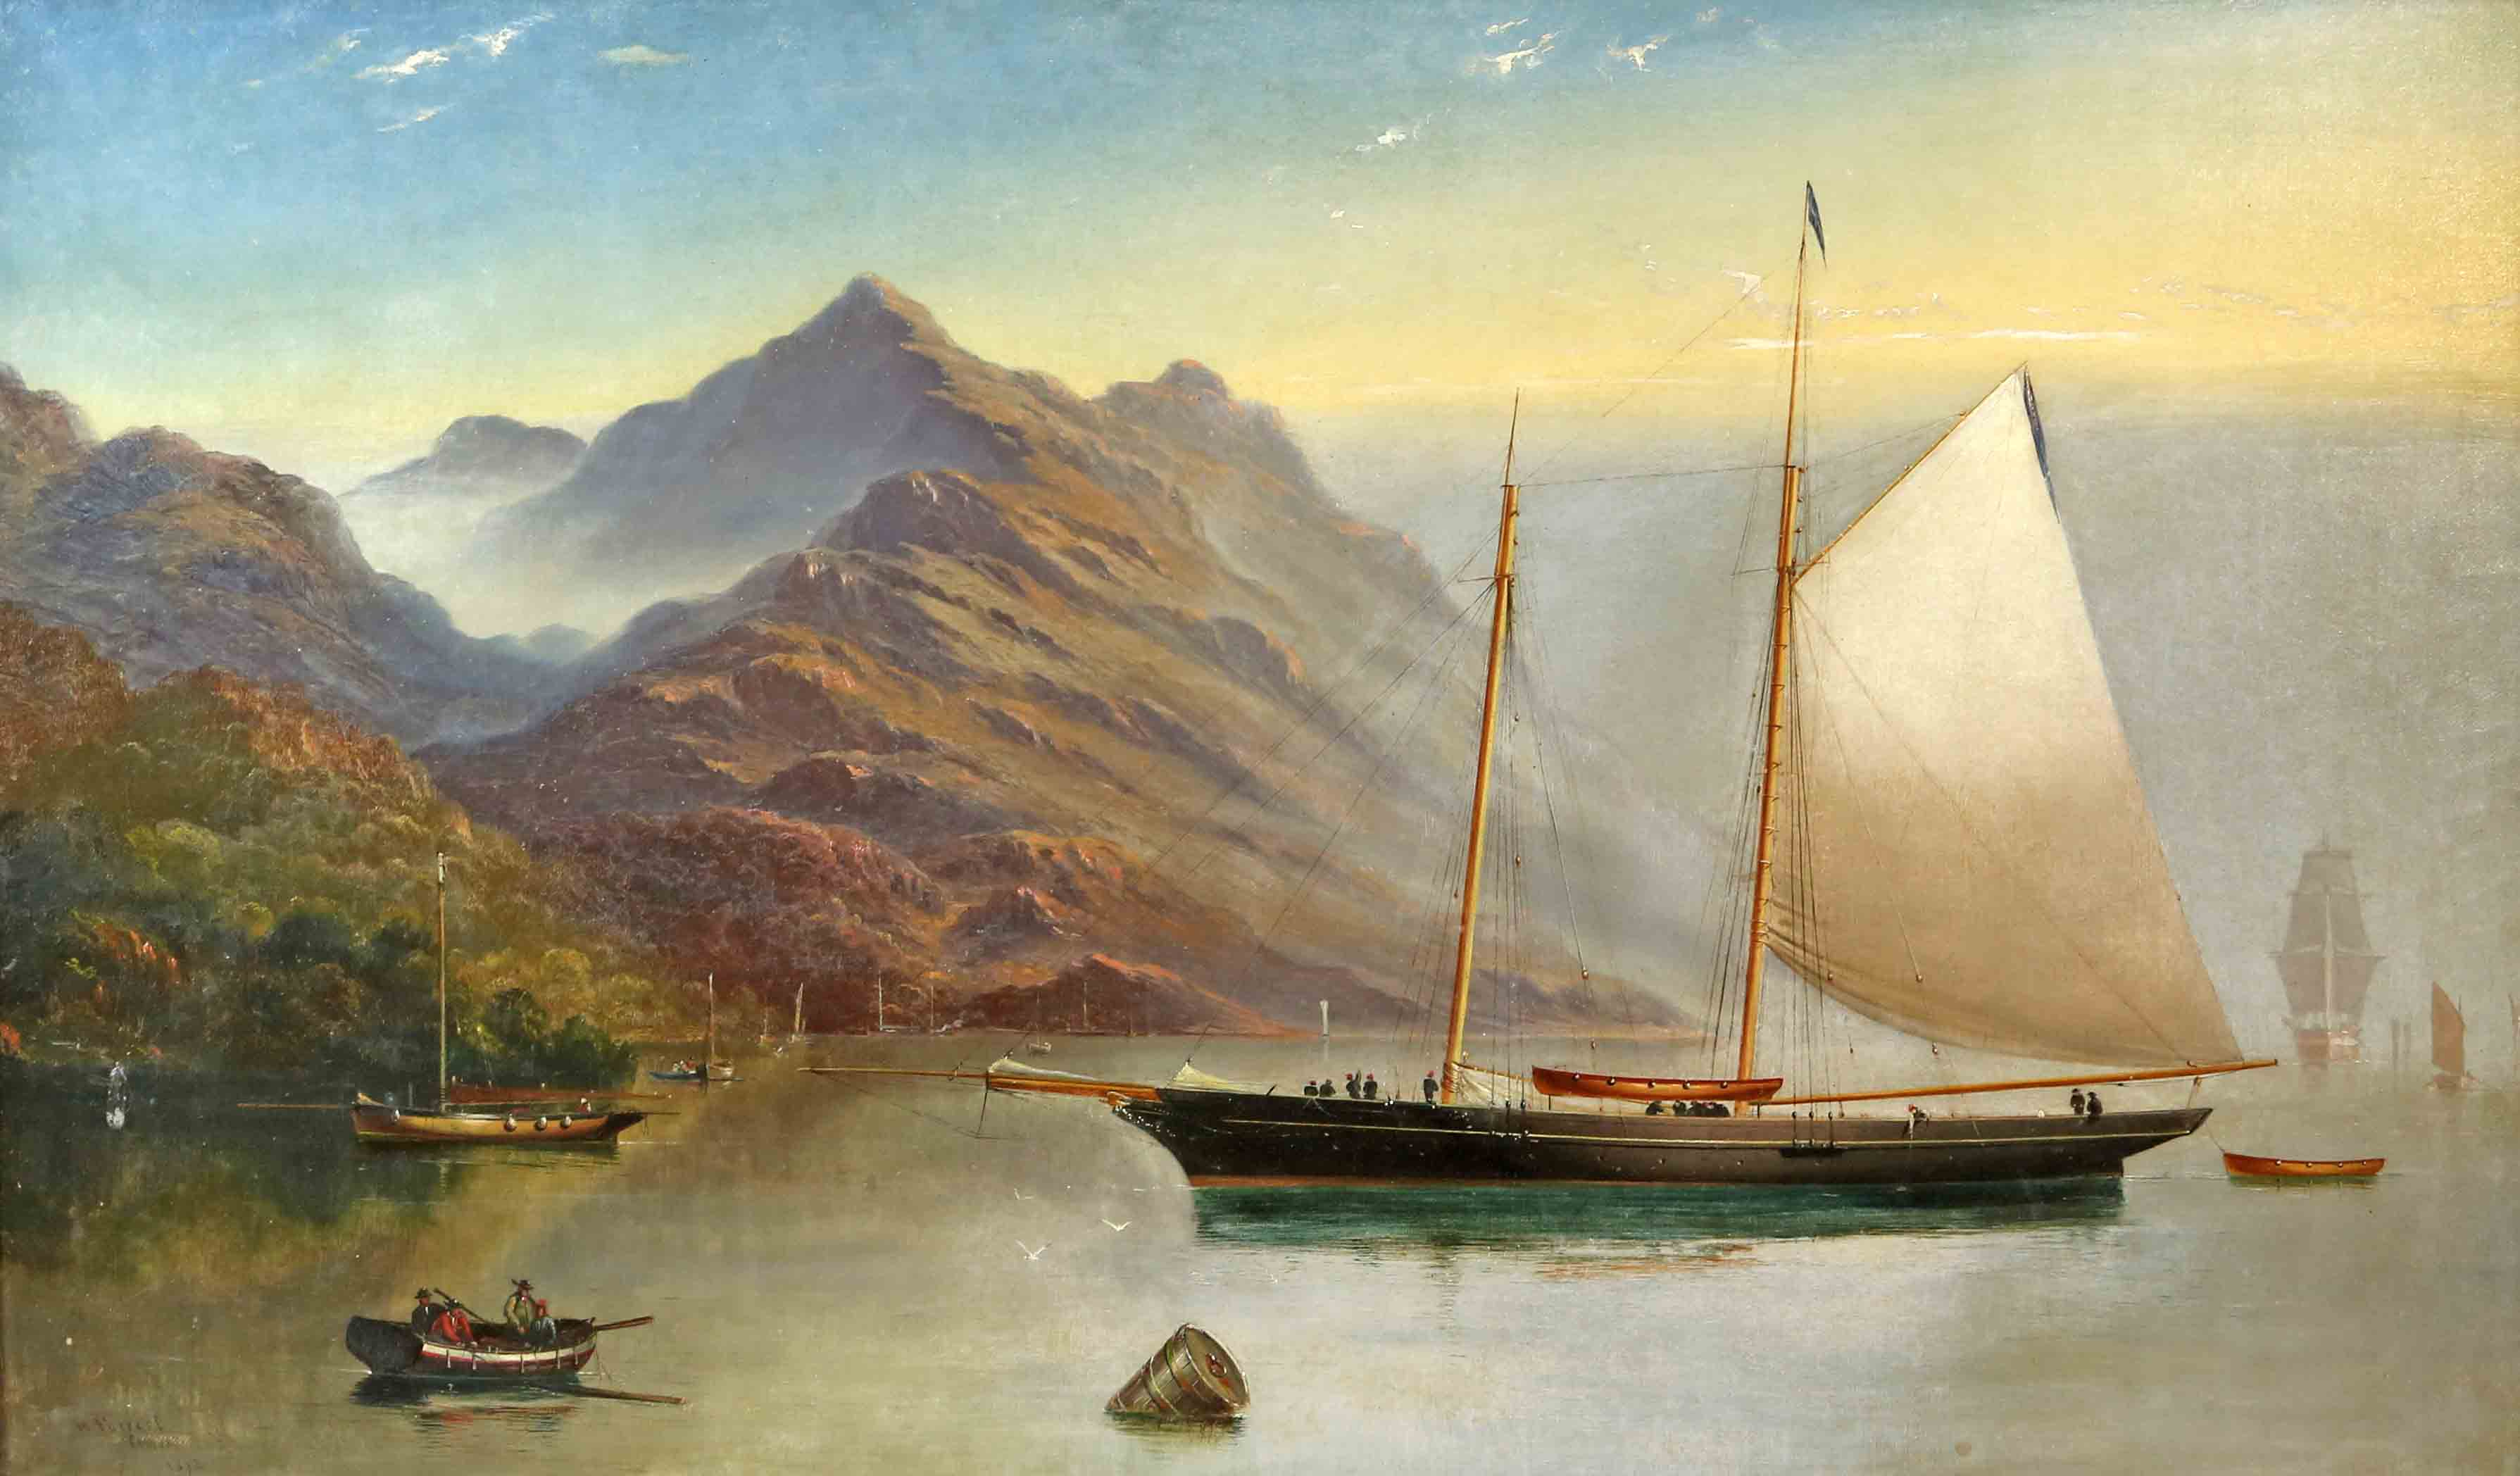 Haughton Forrest (Australian, 1826-1925). Tasmania, Schooner and other ships in a Bay against a mountainous landscape. Signed H. Forrest, Cowes, 1872. 44cm x 75cm. Estimate £1000-1500 at Ewbank's Auctions on March 19.